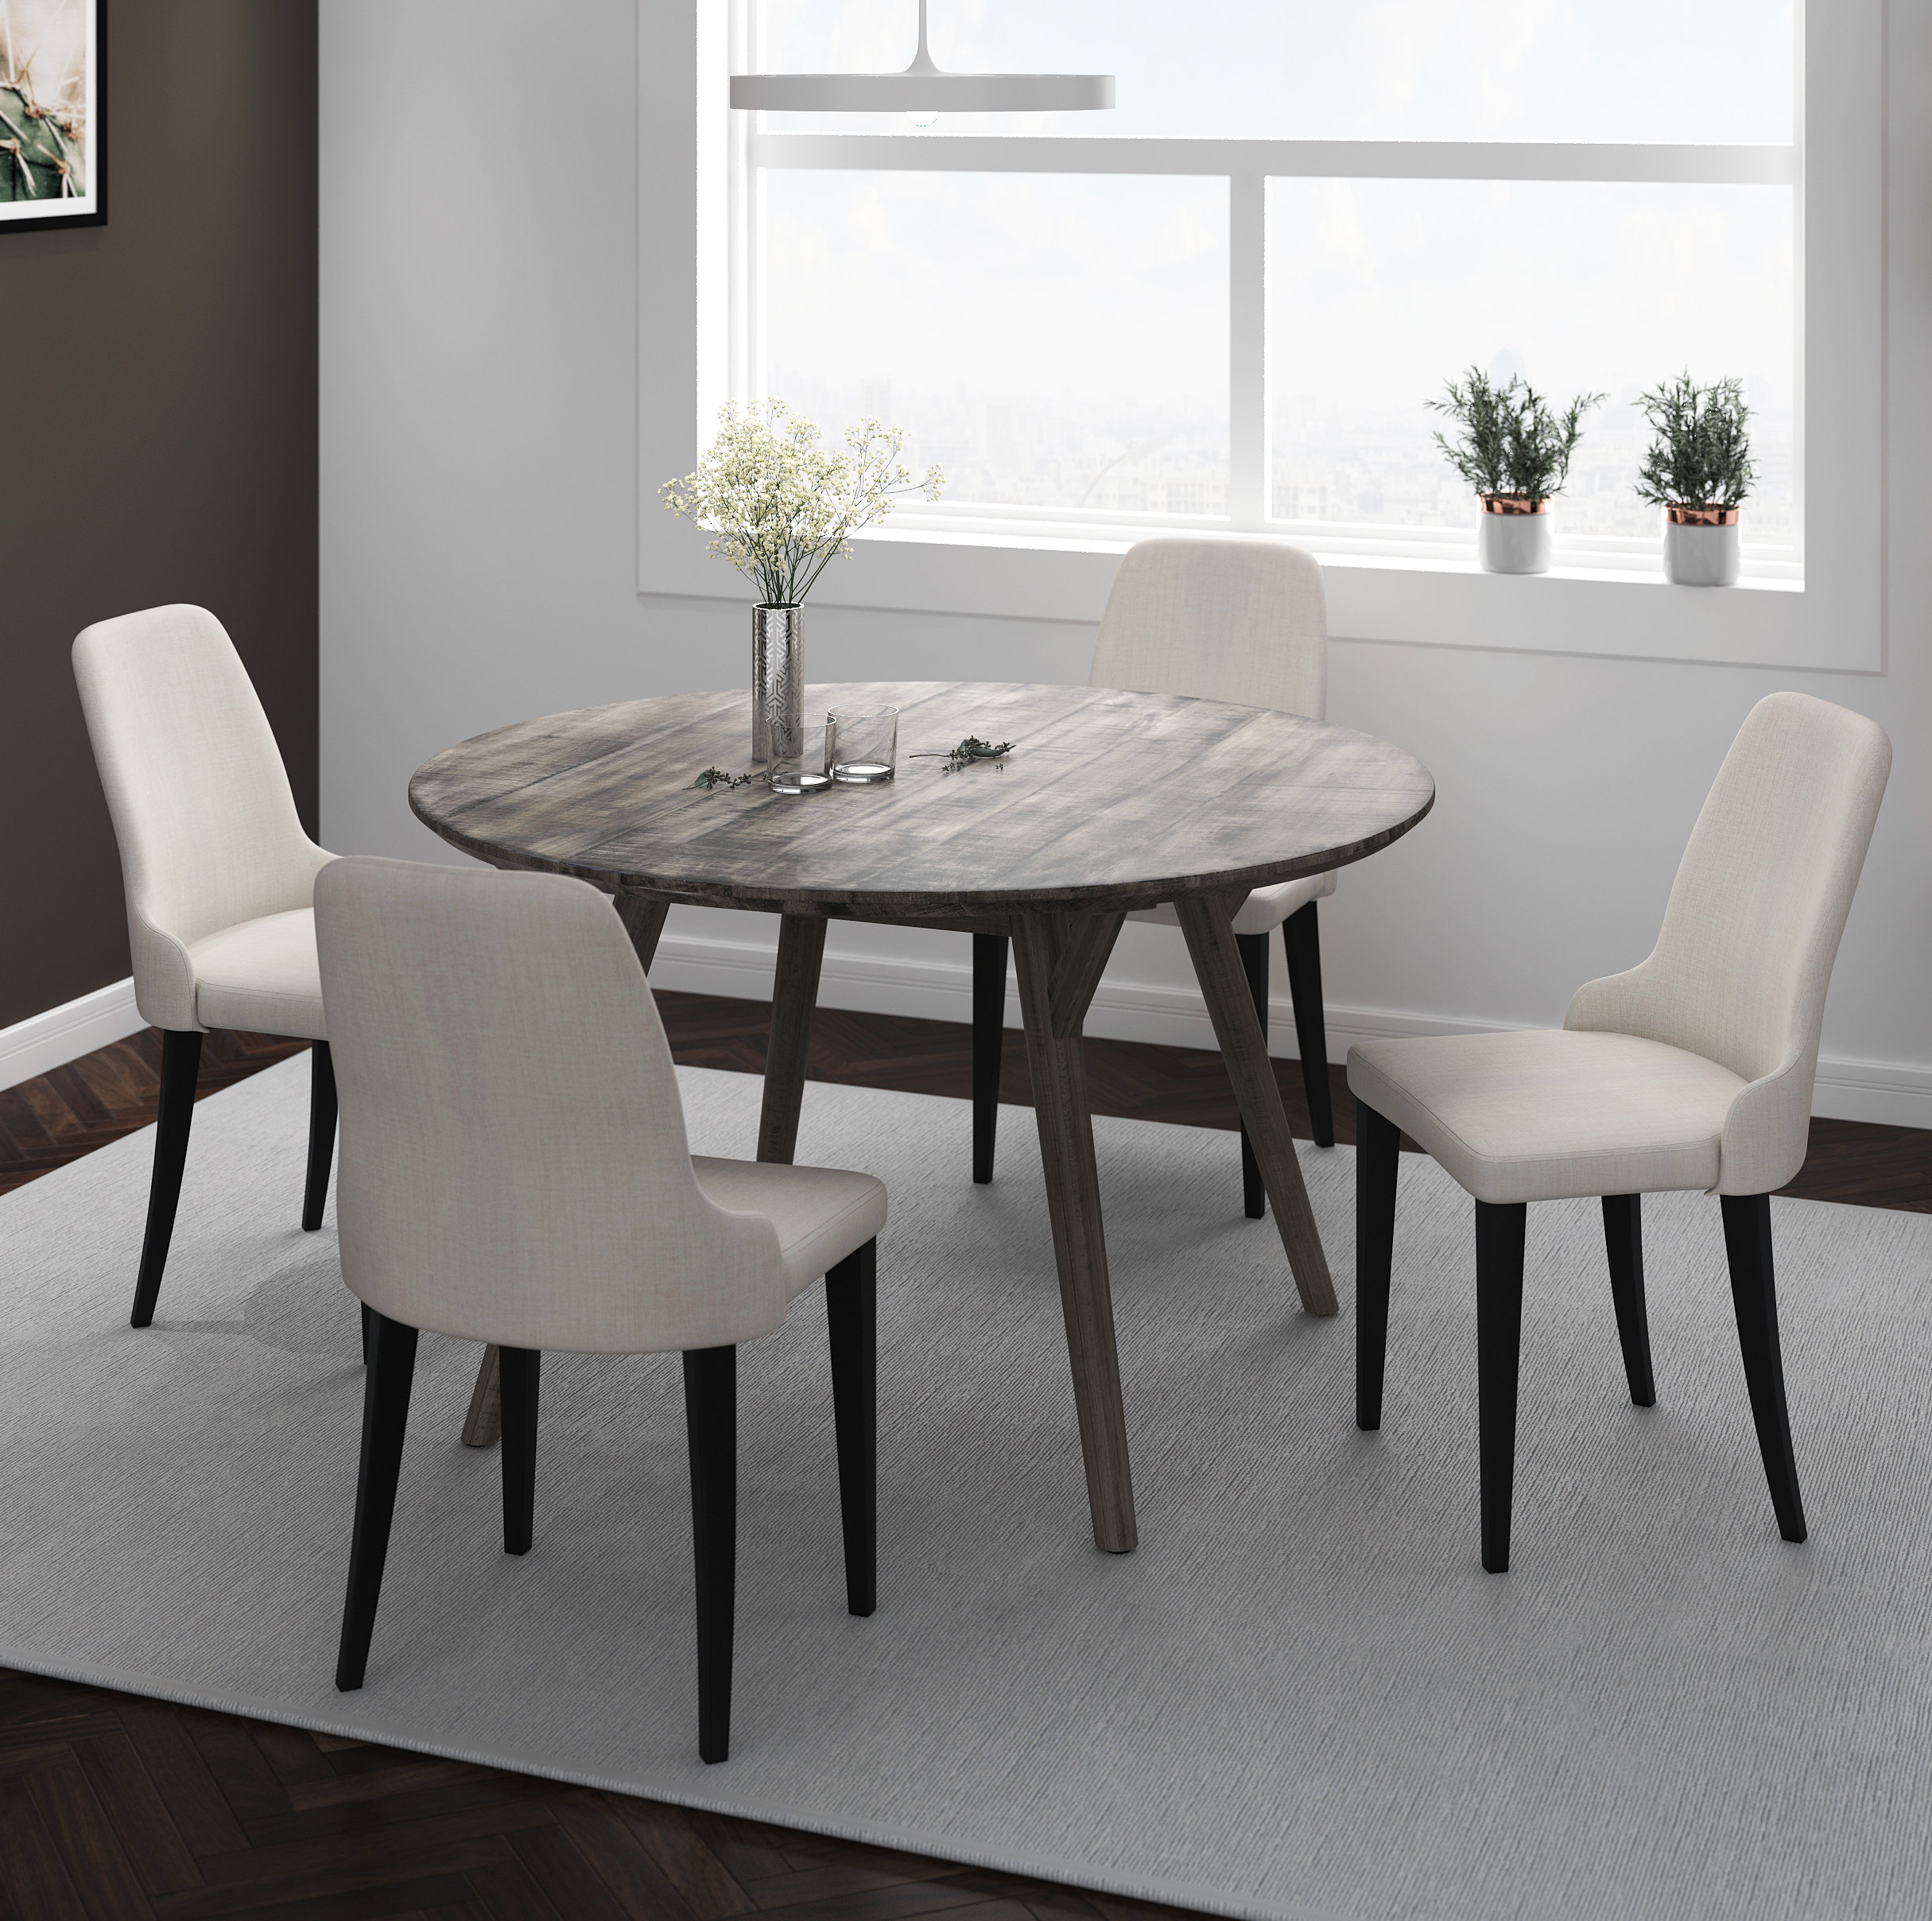 Wiggs 5 Piece Dining Sets With Regard To Most Recently Released Raiford 5 Piece Solid Wood Dining Set (View 12 of 20)